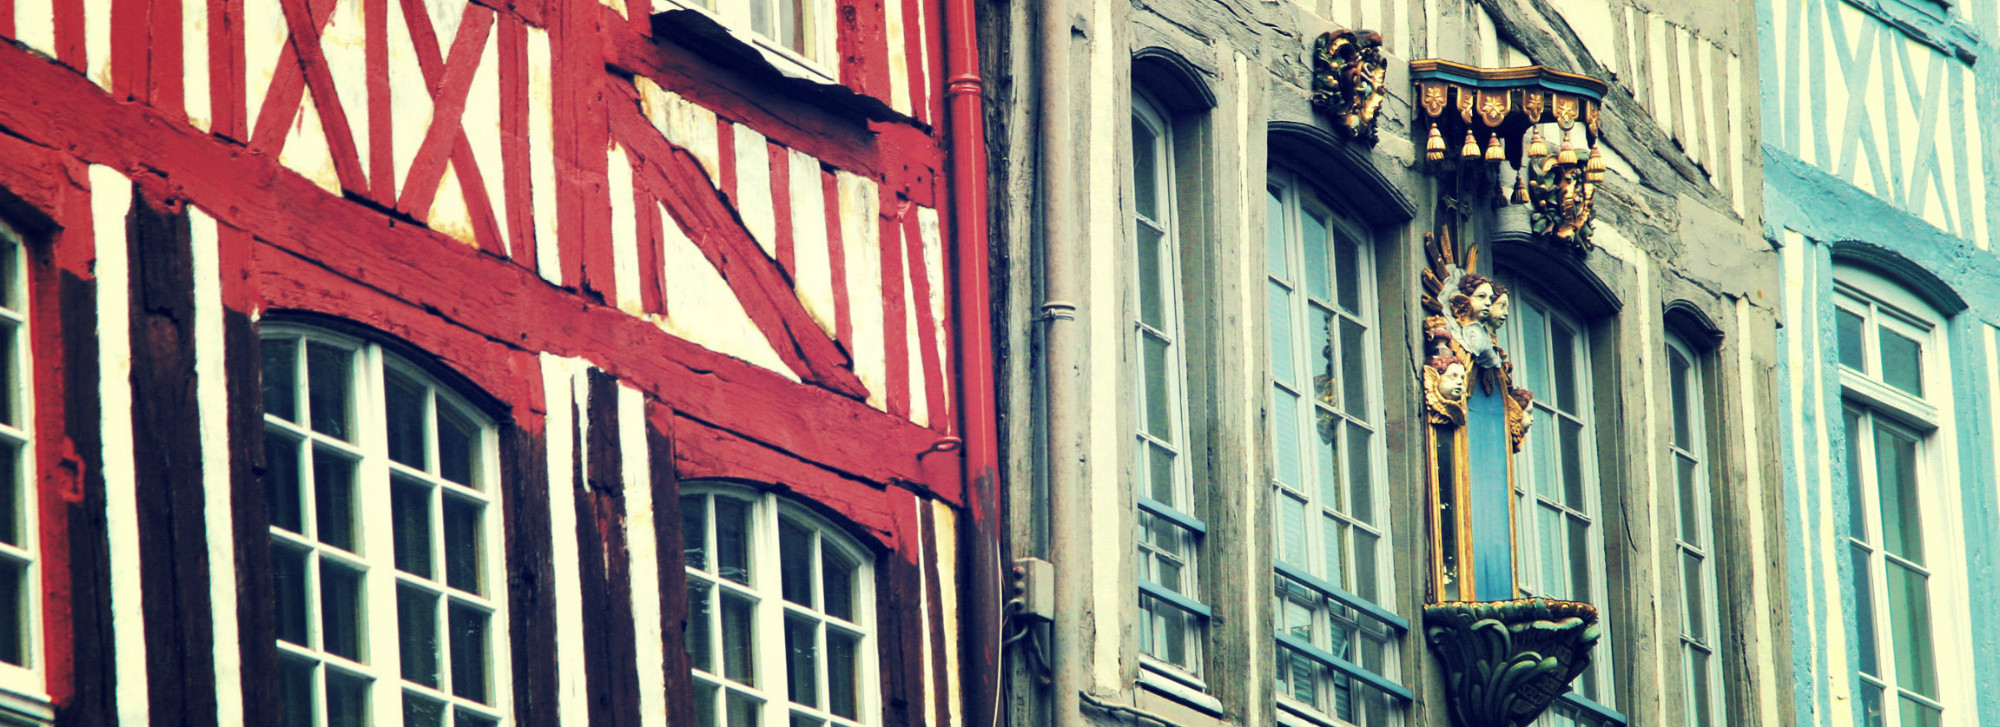 Rouen's traditional timber-framed houses